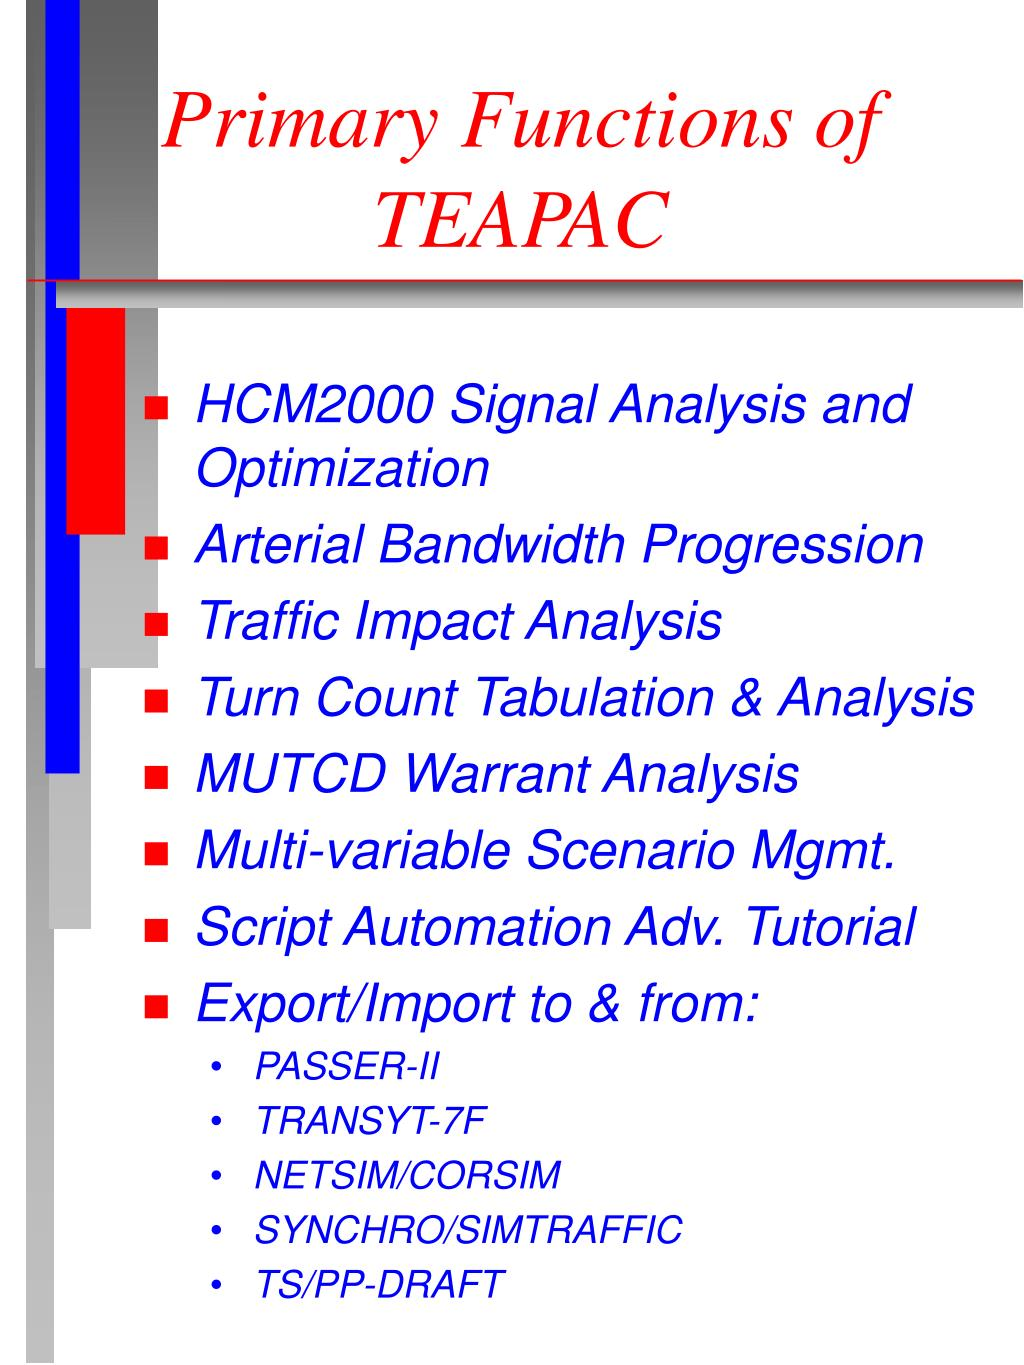 Primary Functions of TEAPAC